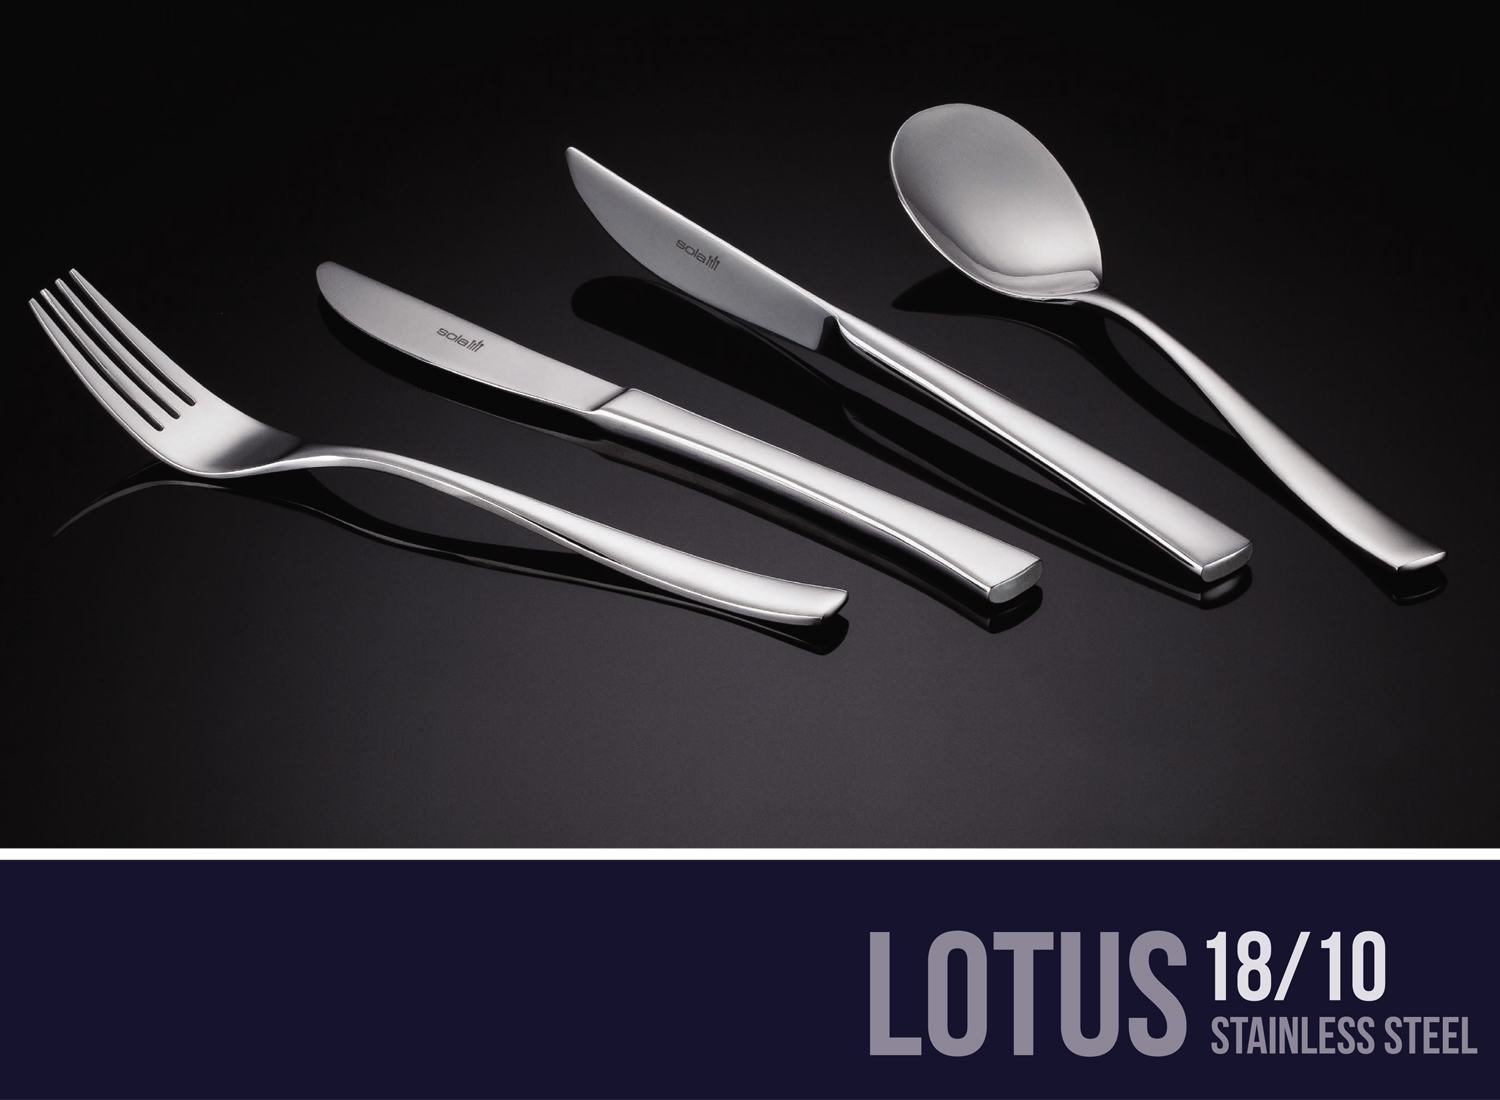 Lotus Stainless Steel